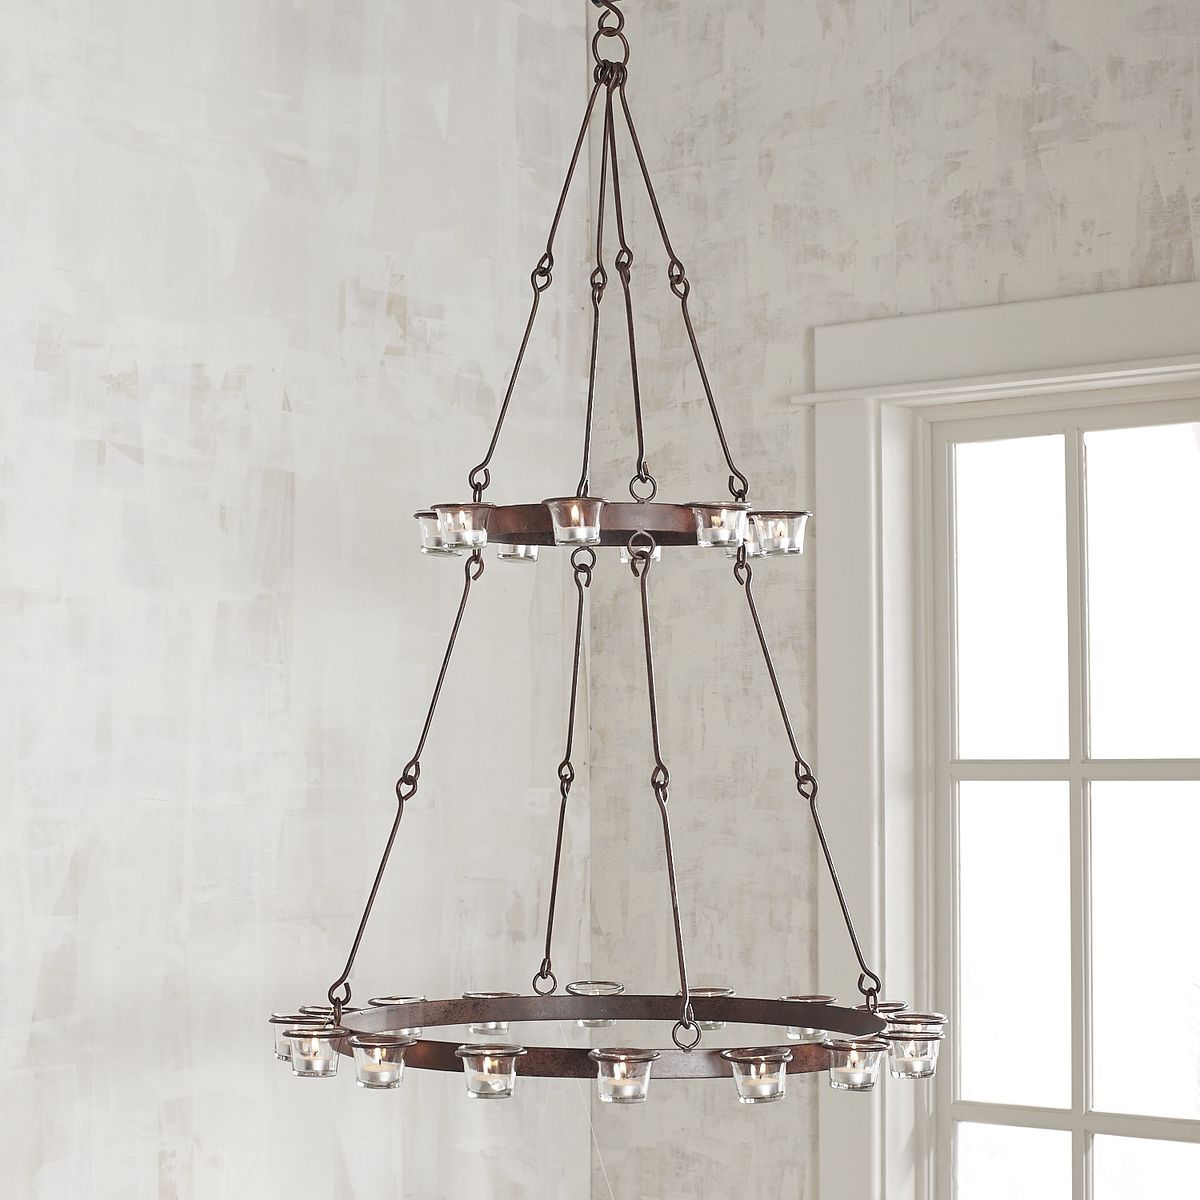 Kroonluchter Ophangen 12 Hanging Candle Chandeliers You Can Buy Or Diy